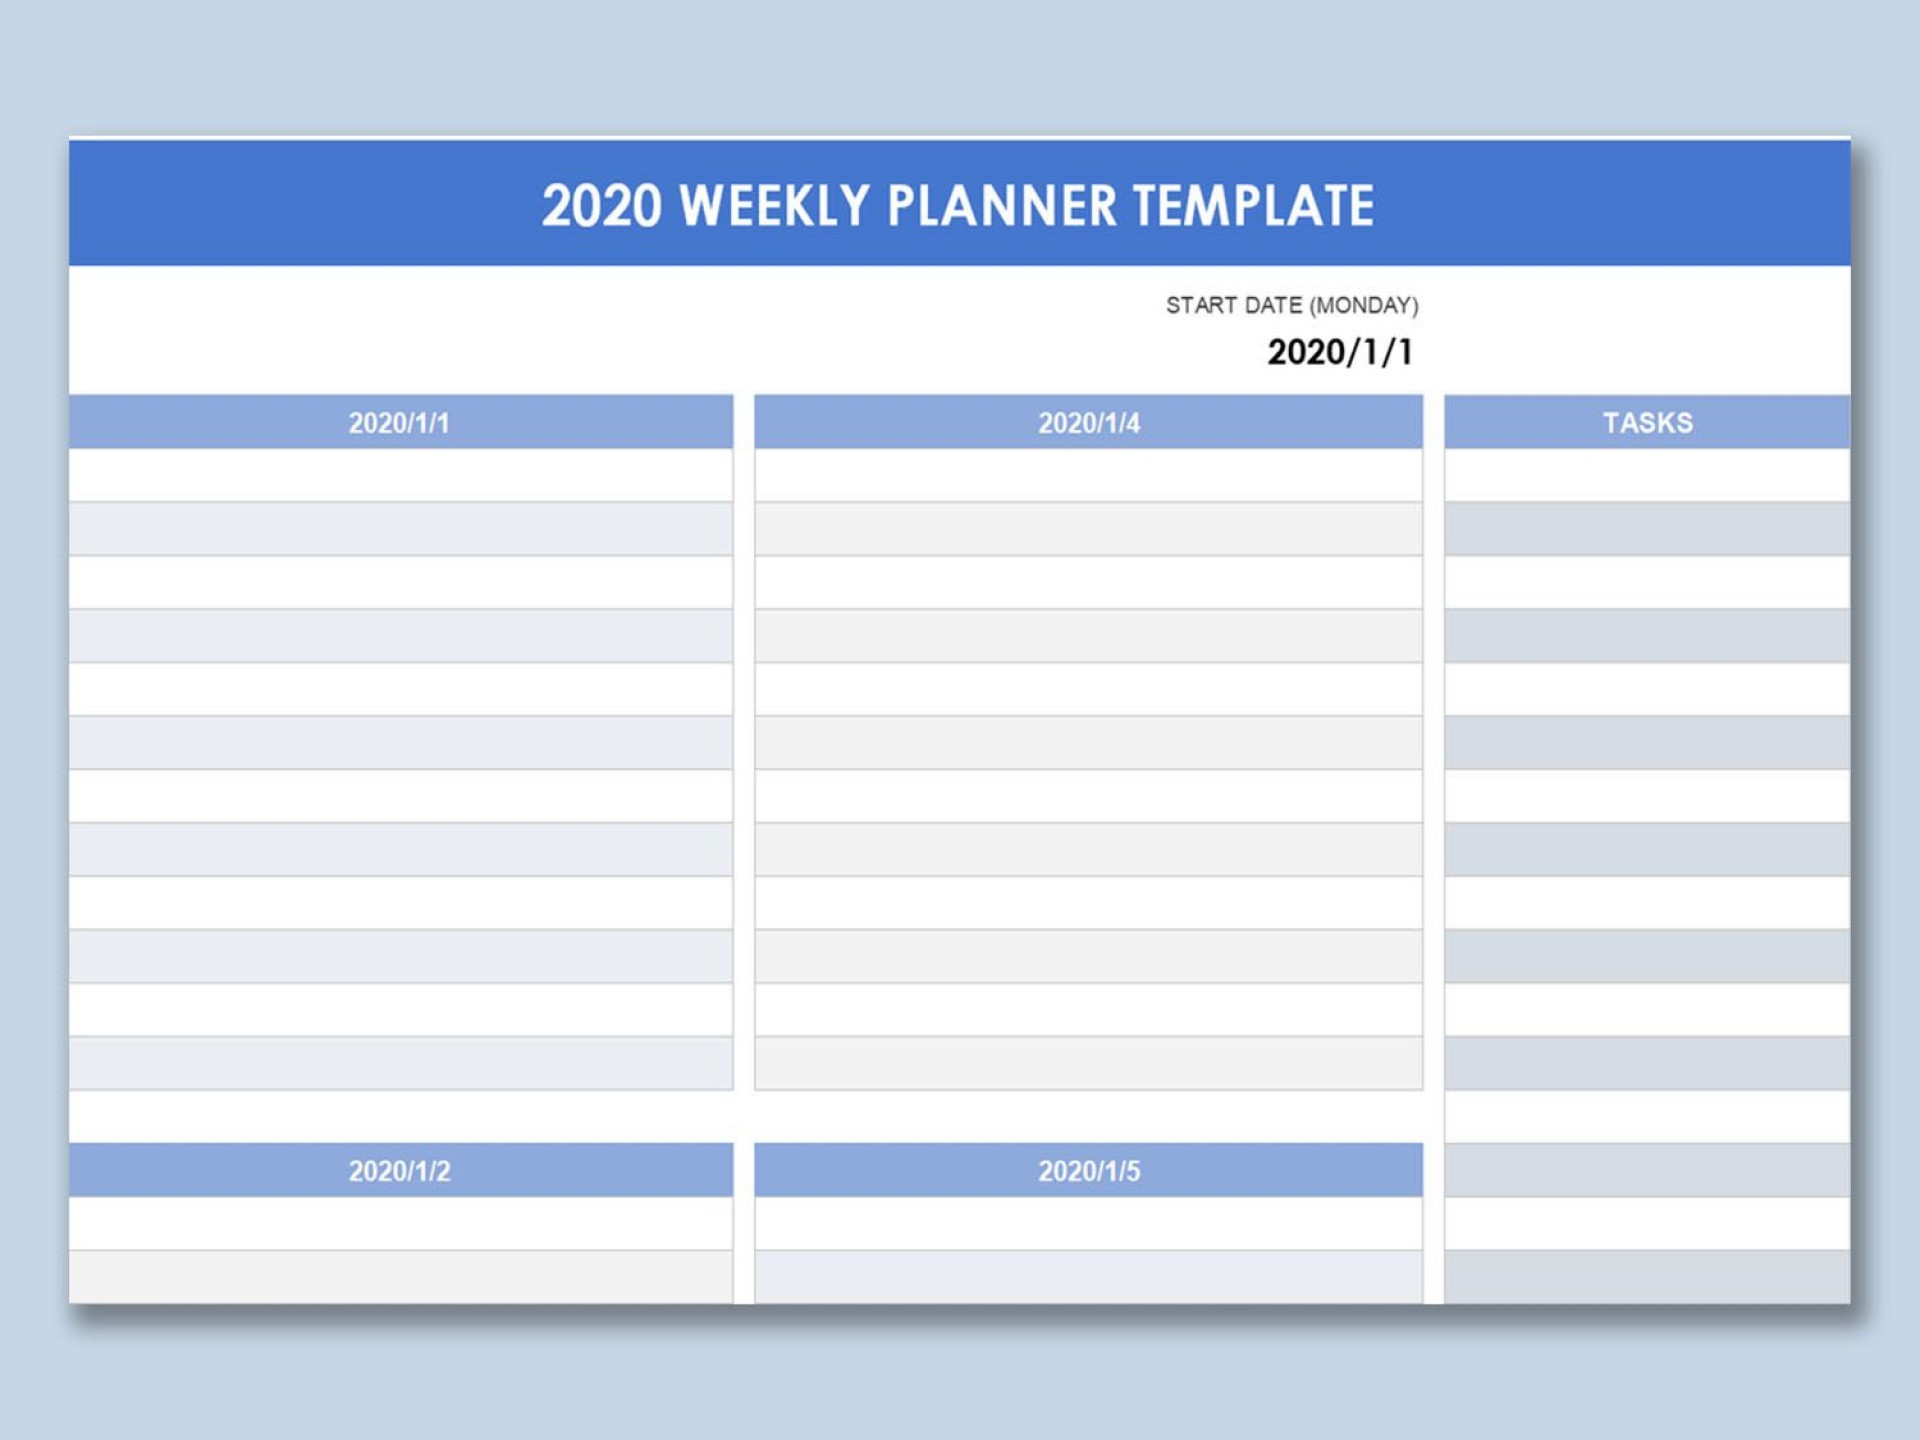 001 Stupendou Excel Weekly Timetable Template Design  Planner 2020 Meal 20191920